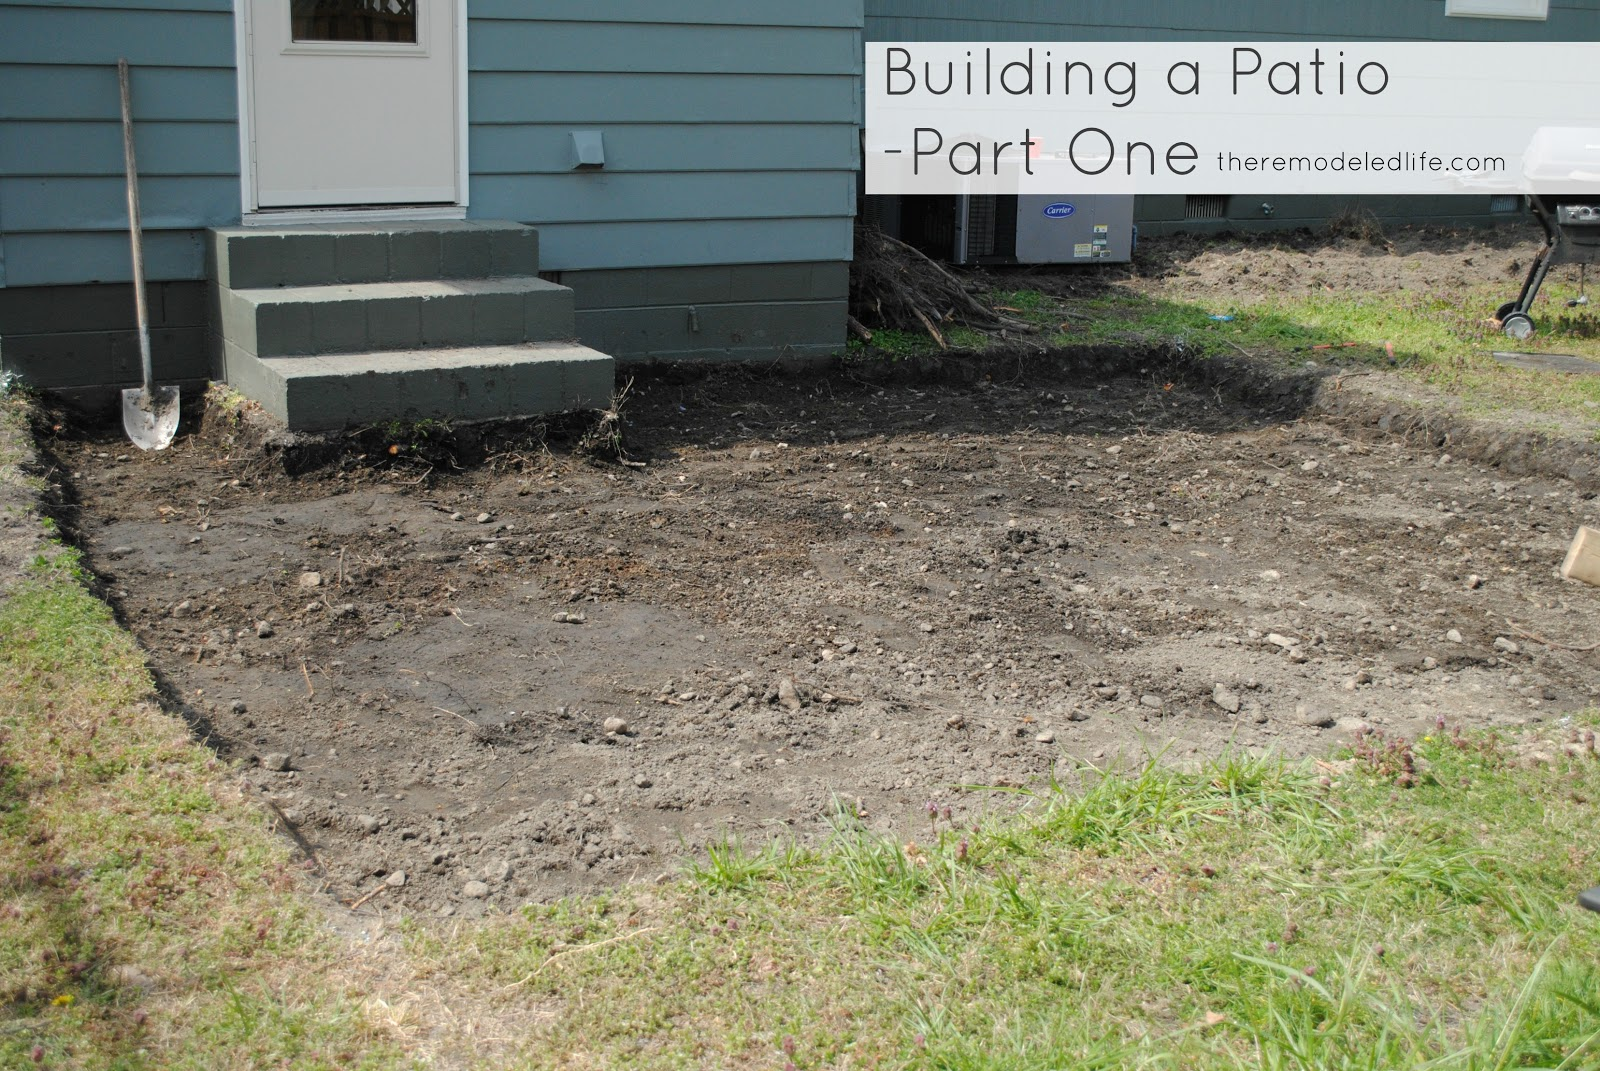 Soon This Pit Will Be Filled With Good Things That Will Lead To A Patio    Which We Canu0027t Wait For.